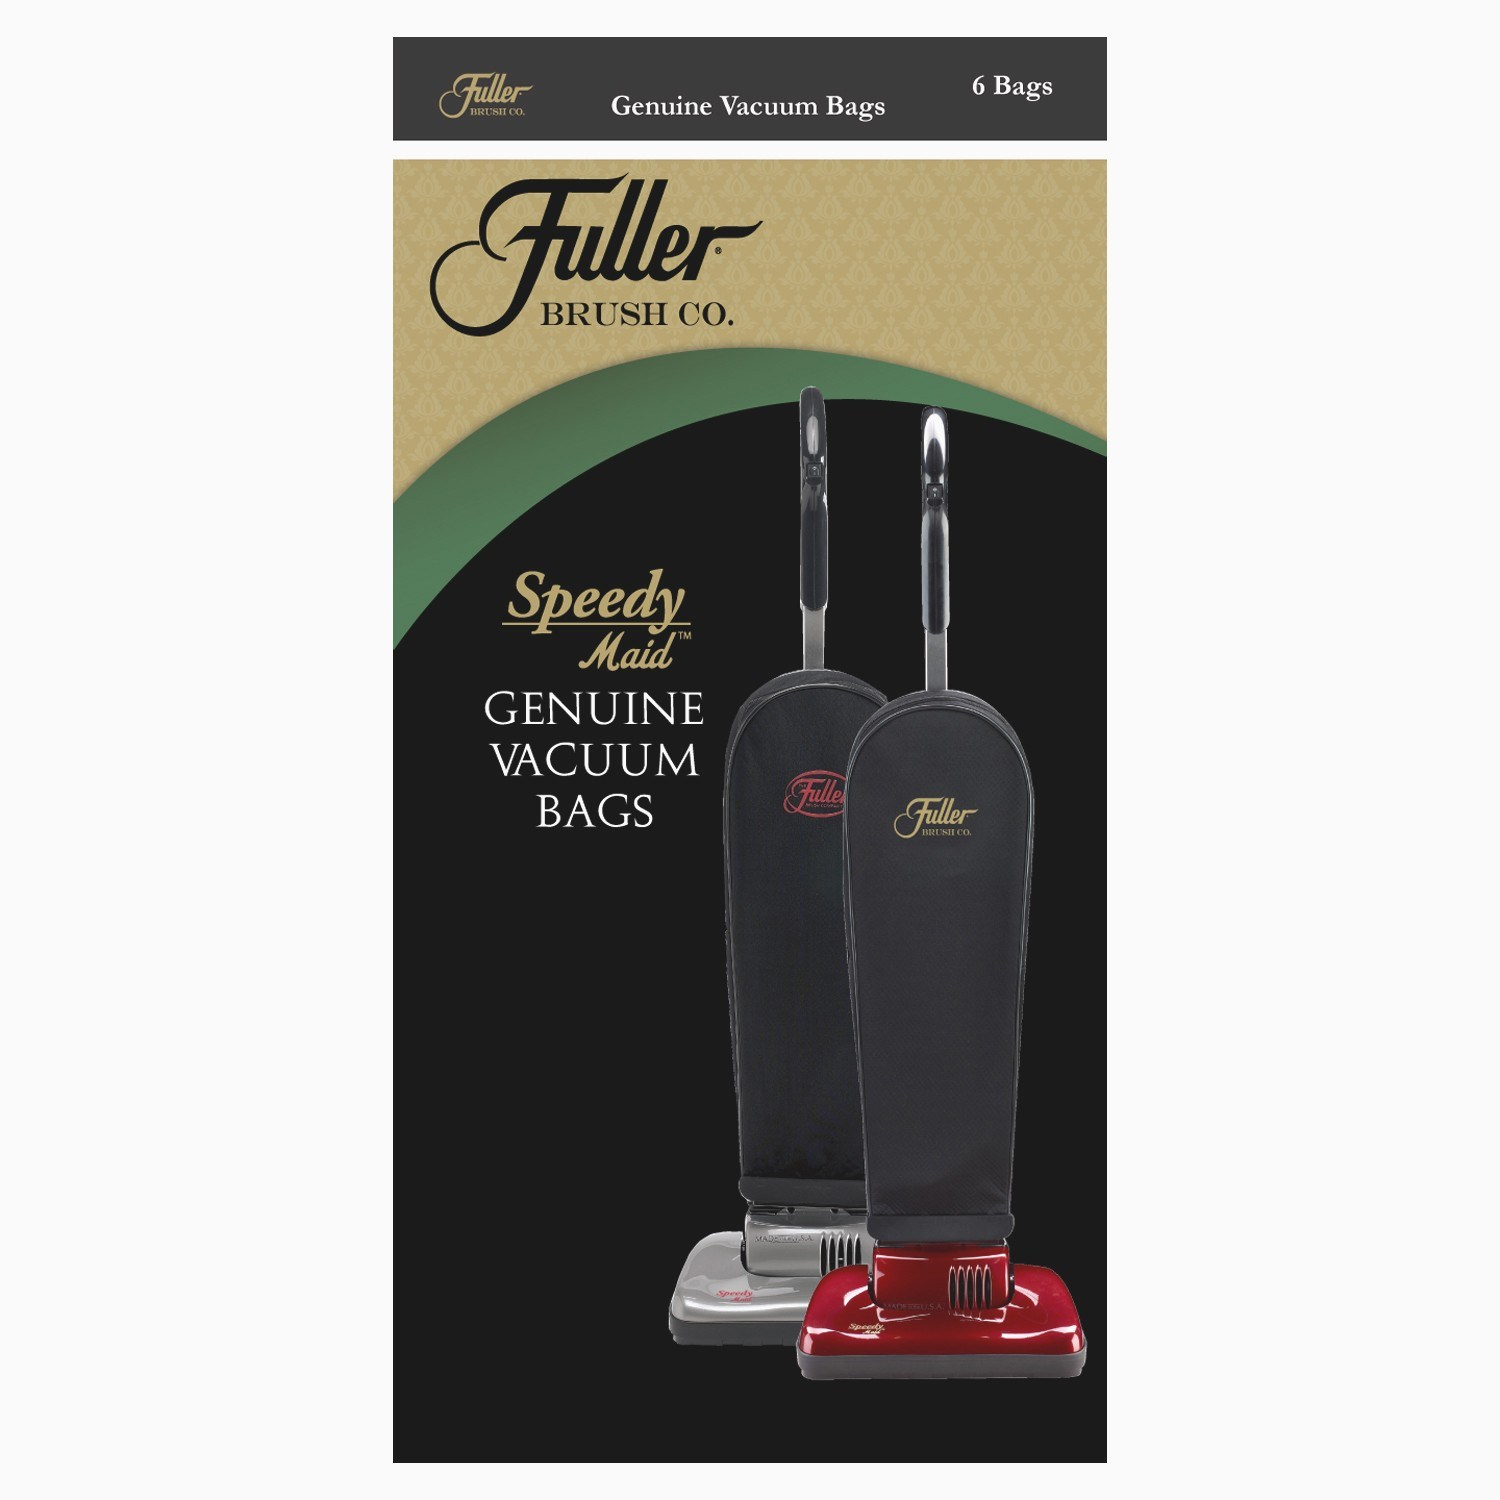 Fuller Brush Paper Vacuum Bags for Speedy Maid